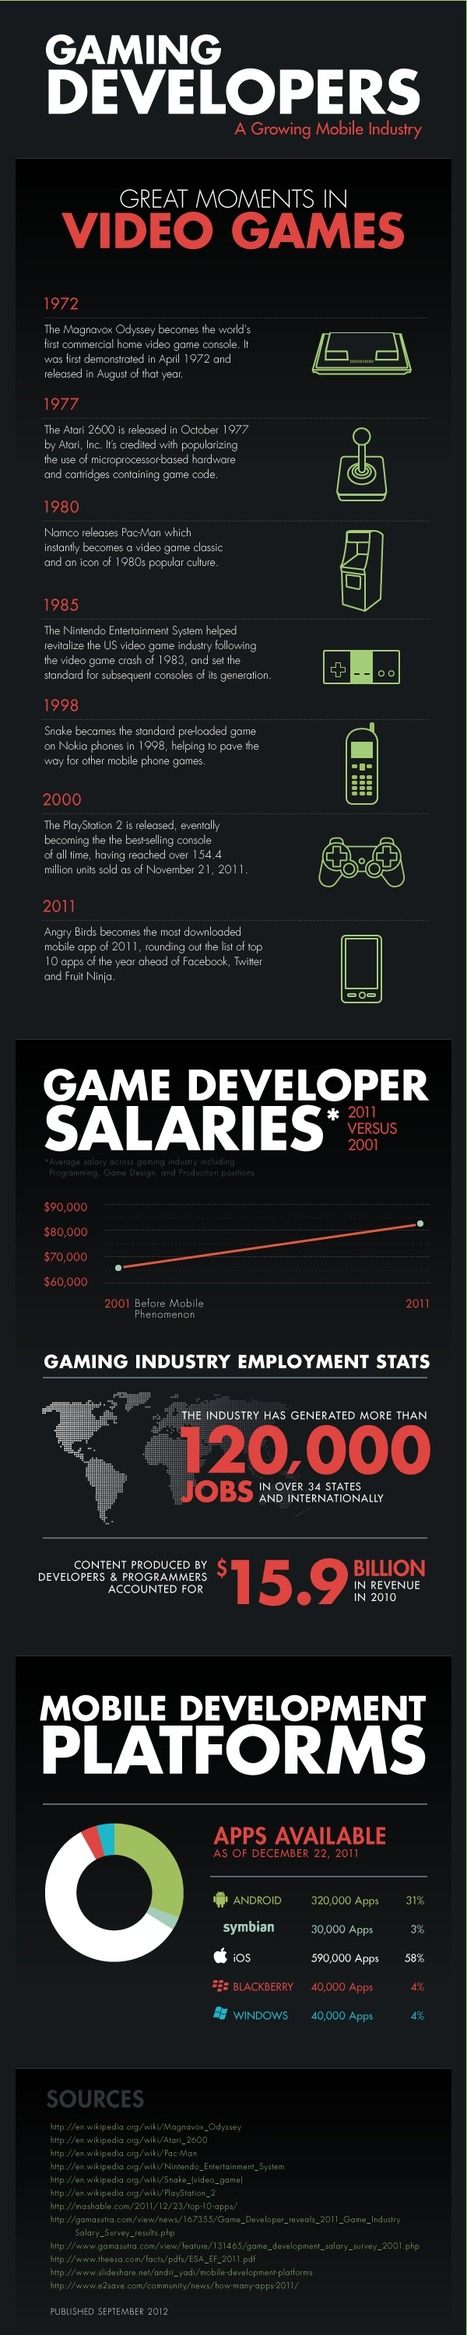 INFOGRAPHIC: Mobile Gaming - A Growing Industry | (I+D)+(i+c): Gamification, GBL, AR, Learning Analytics, SNA, Big Data, Robotics & Partners | Scoop.it